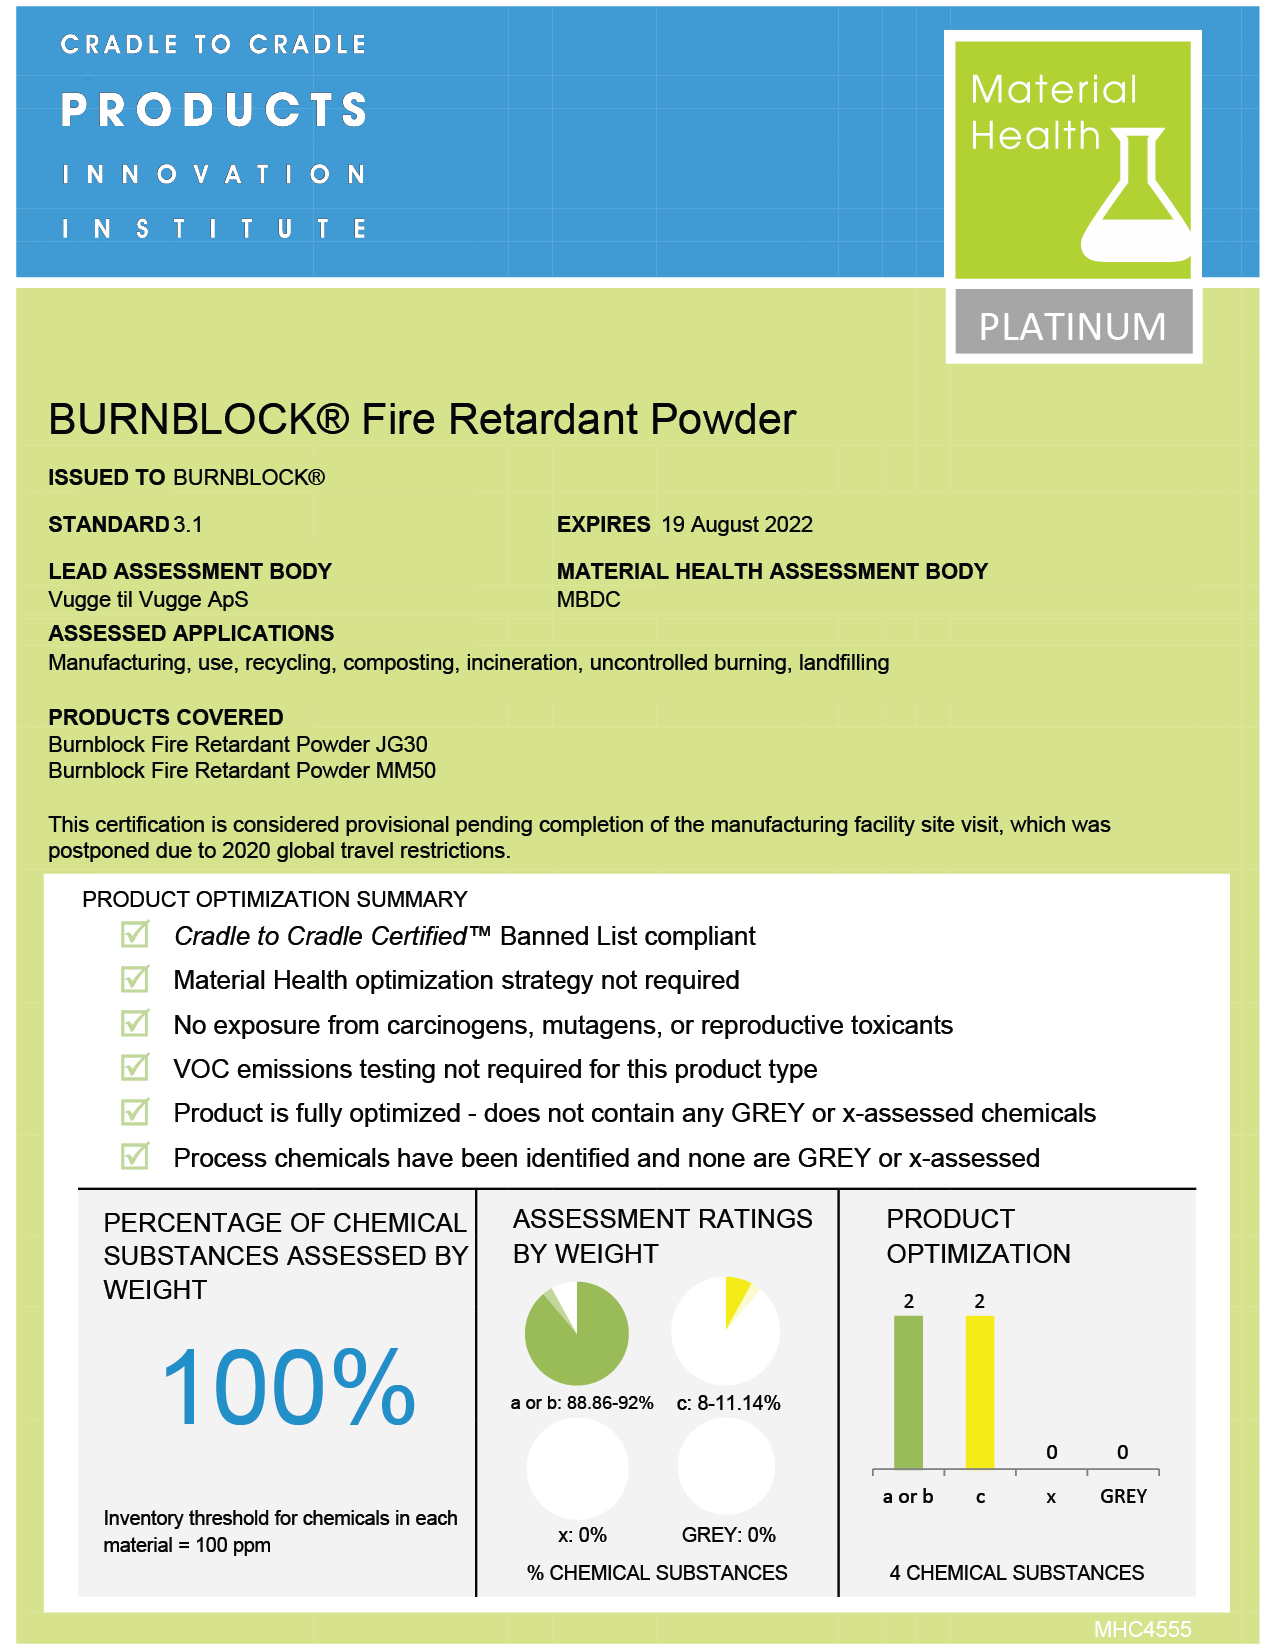 Burnblock_C2C_Materialhealth_Platinum_200825-01